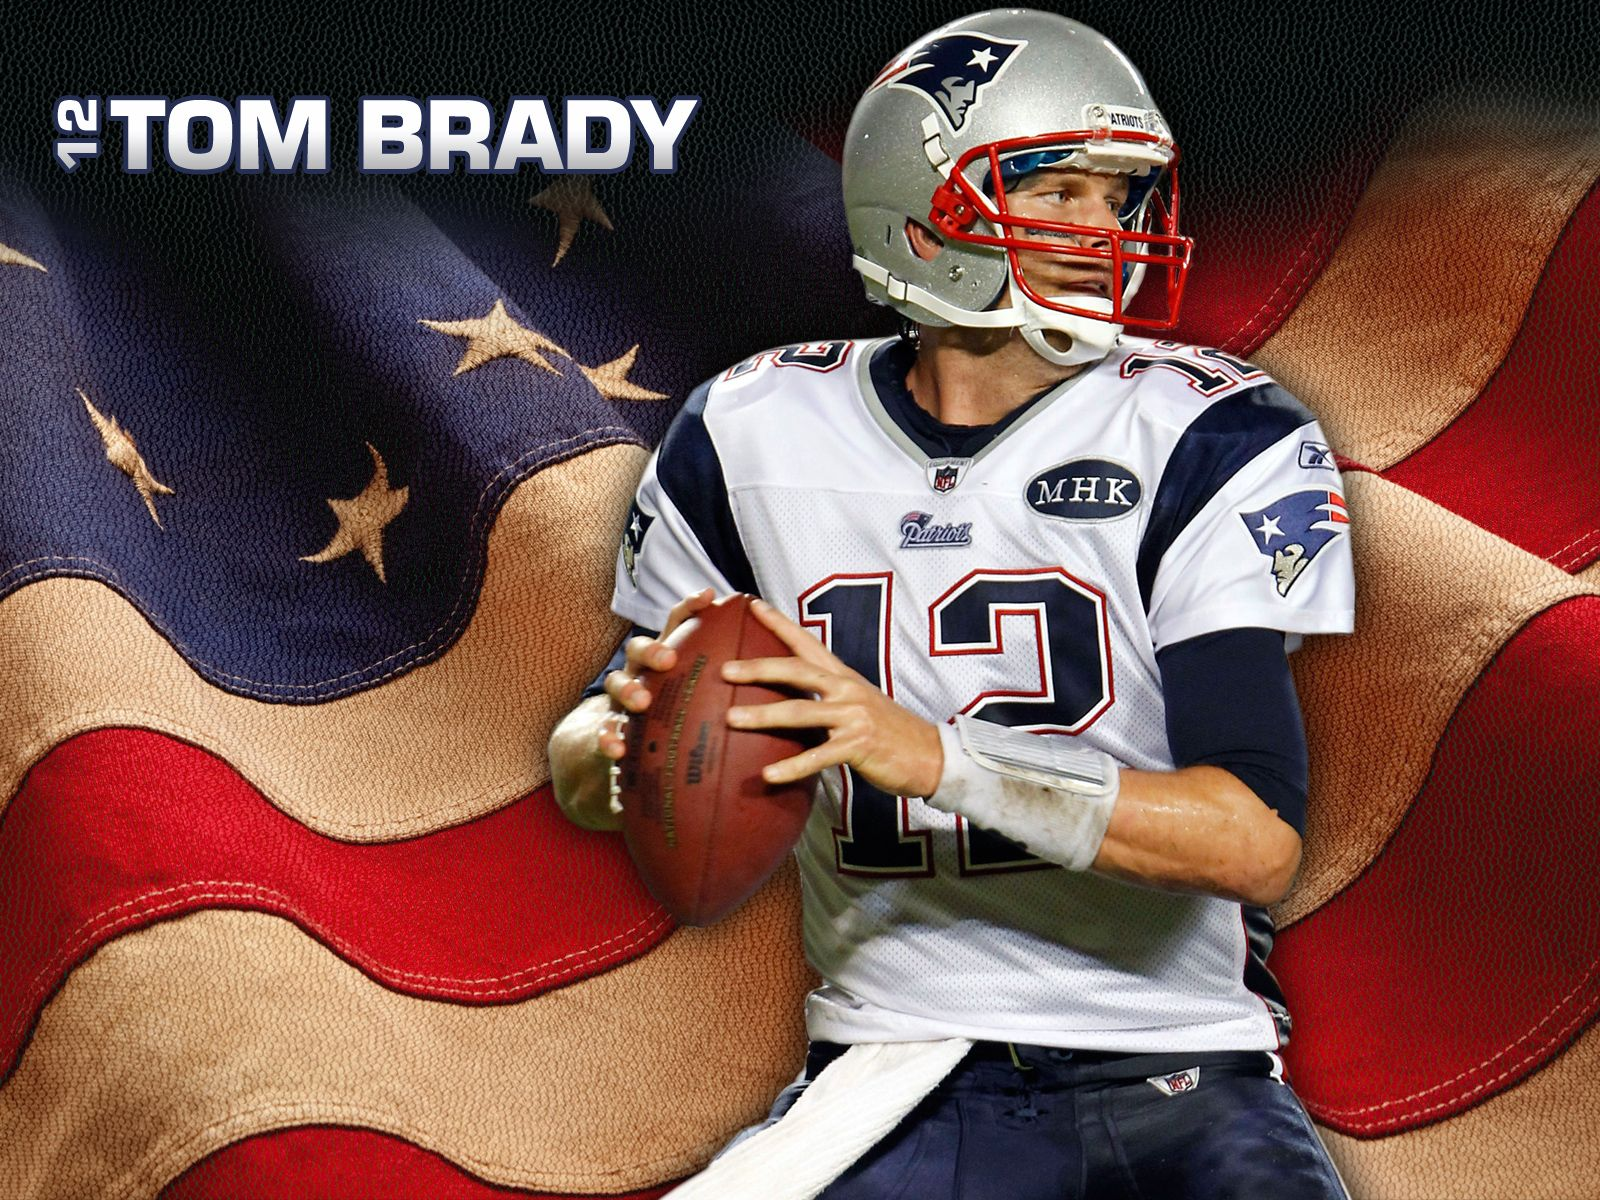 Pin on Patriots Graphics & Wallpaper